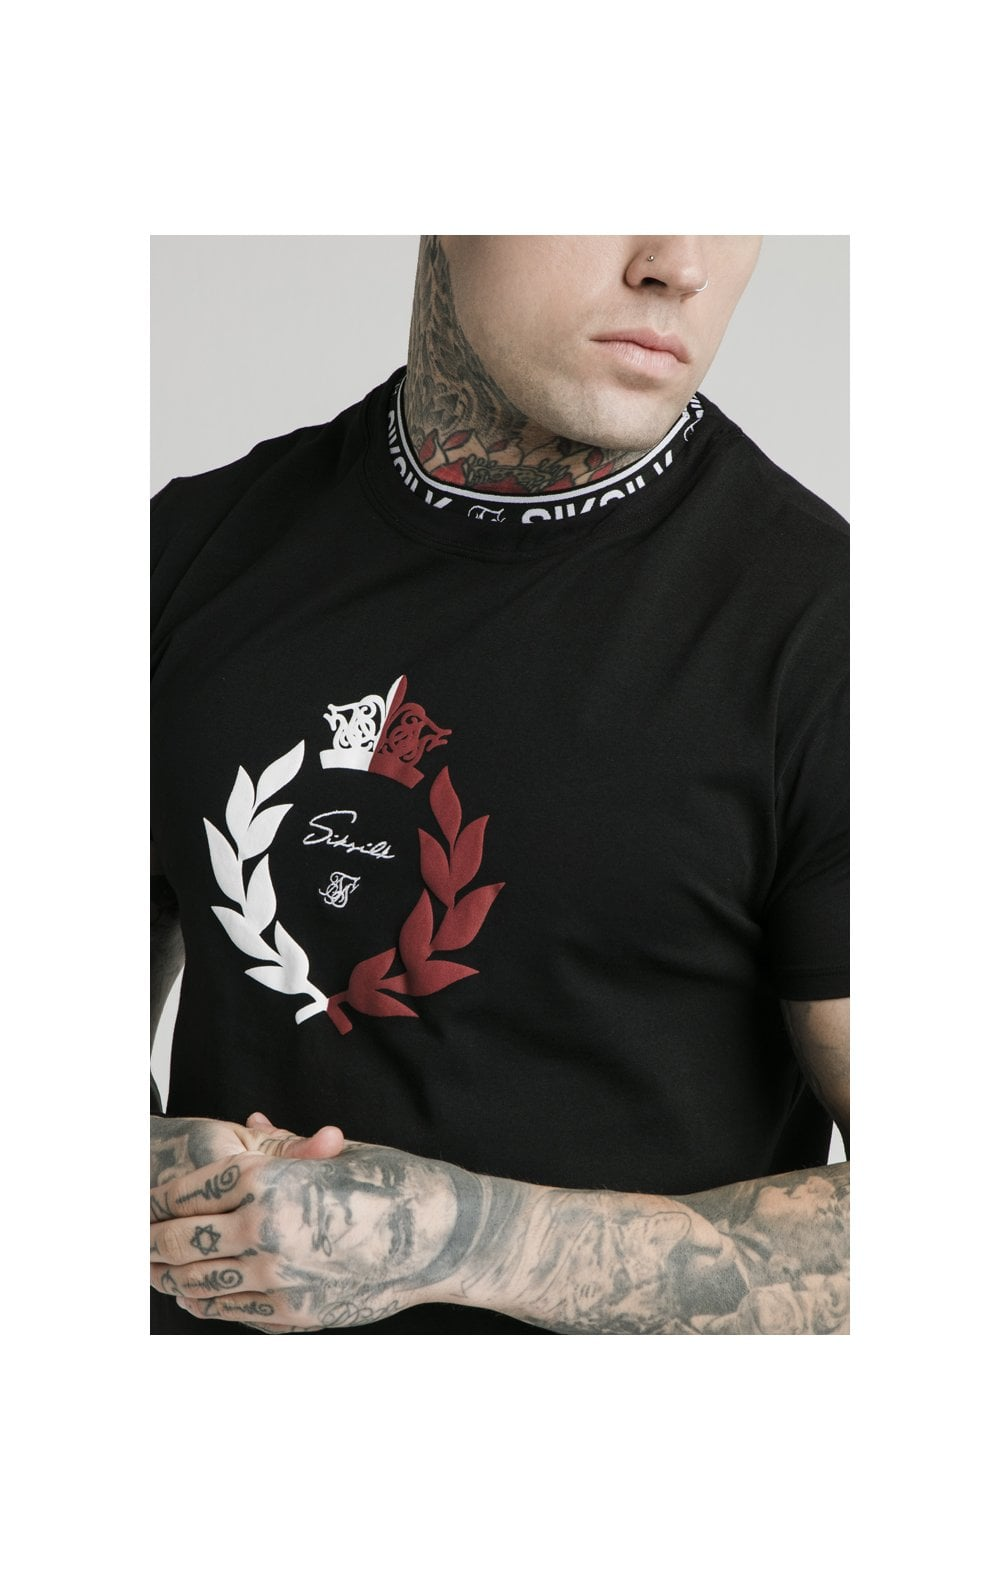 SikSilk S/S Tape Collar Prestige Tee - Black (2)